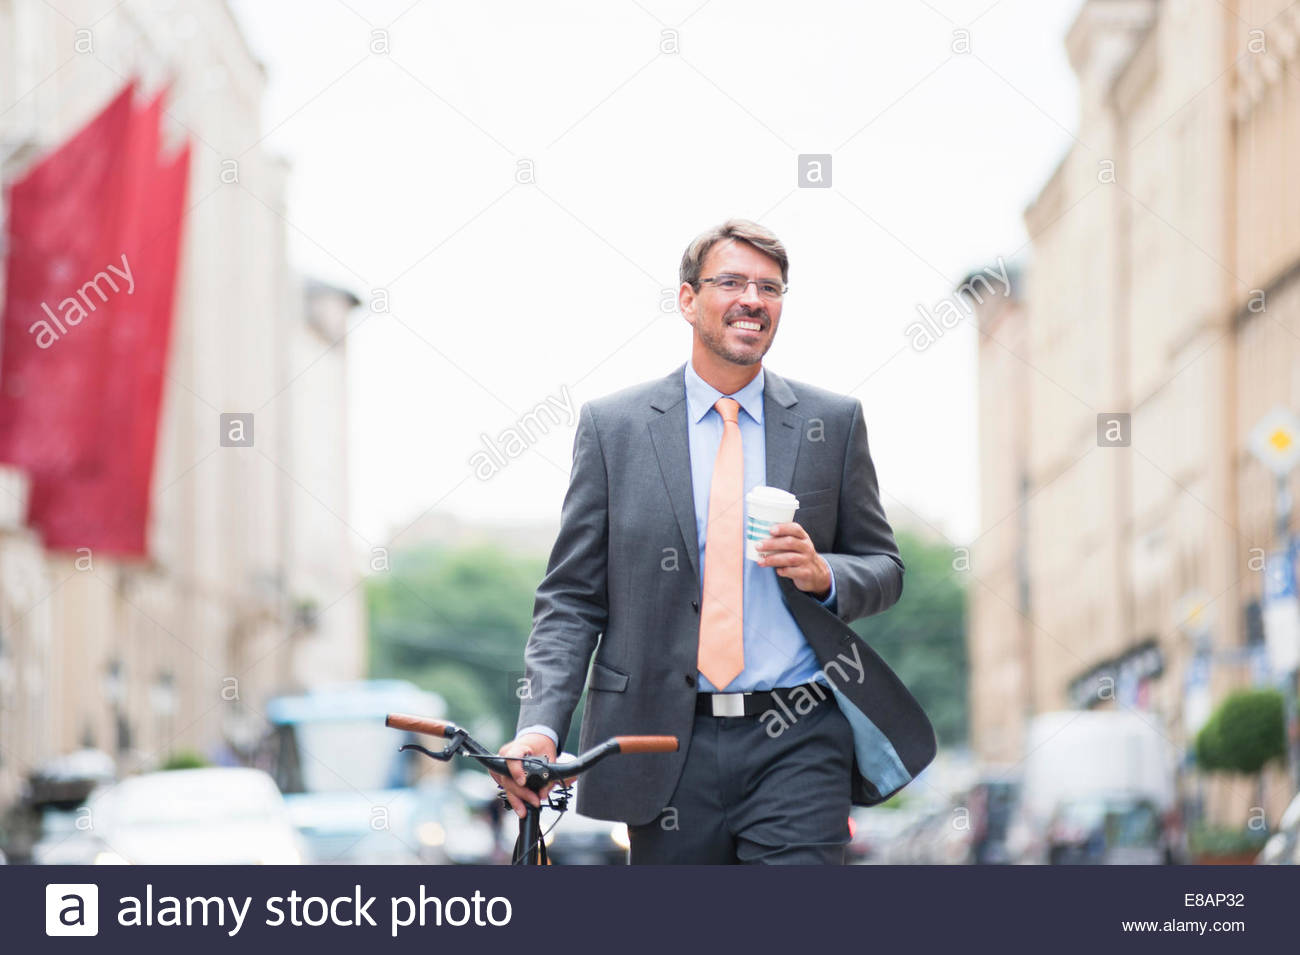 Mature businessman pushing bicycle in street and drinking takeaway coffee - Stock Image